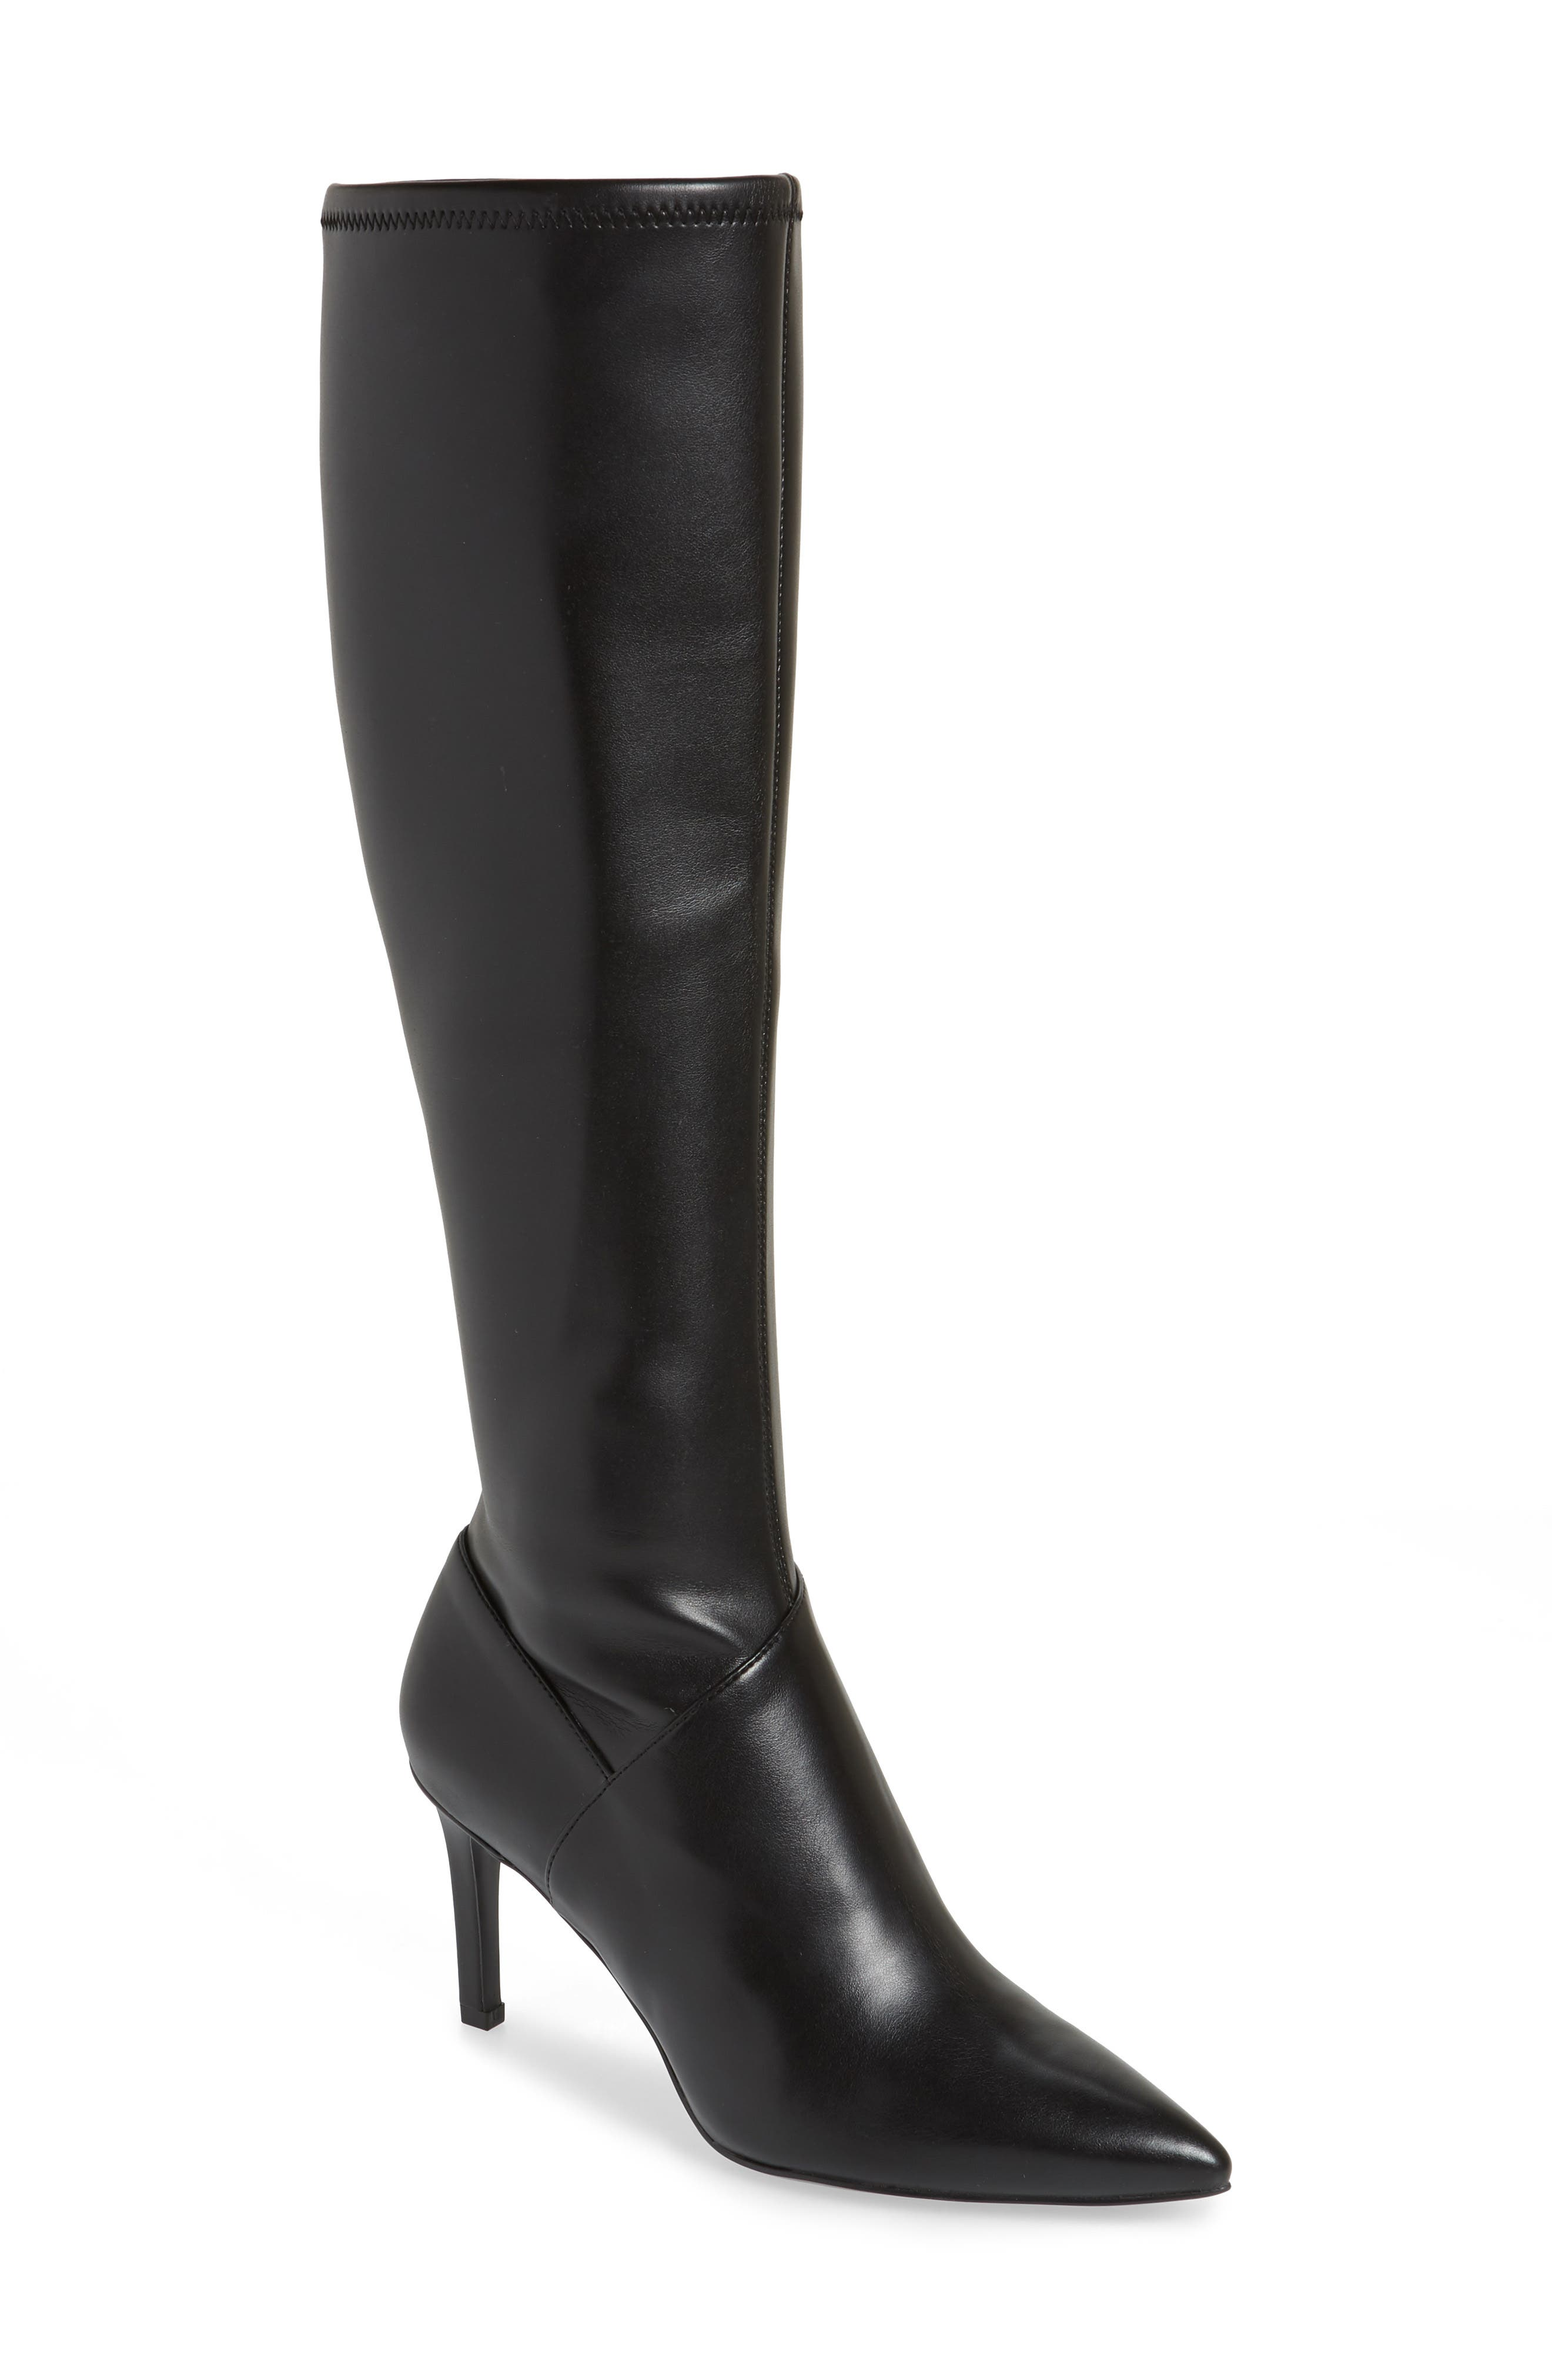 Nine West Chelsis Knee High Boot- Black